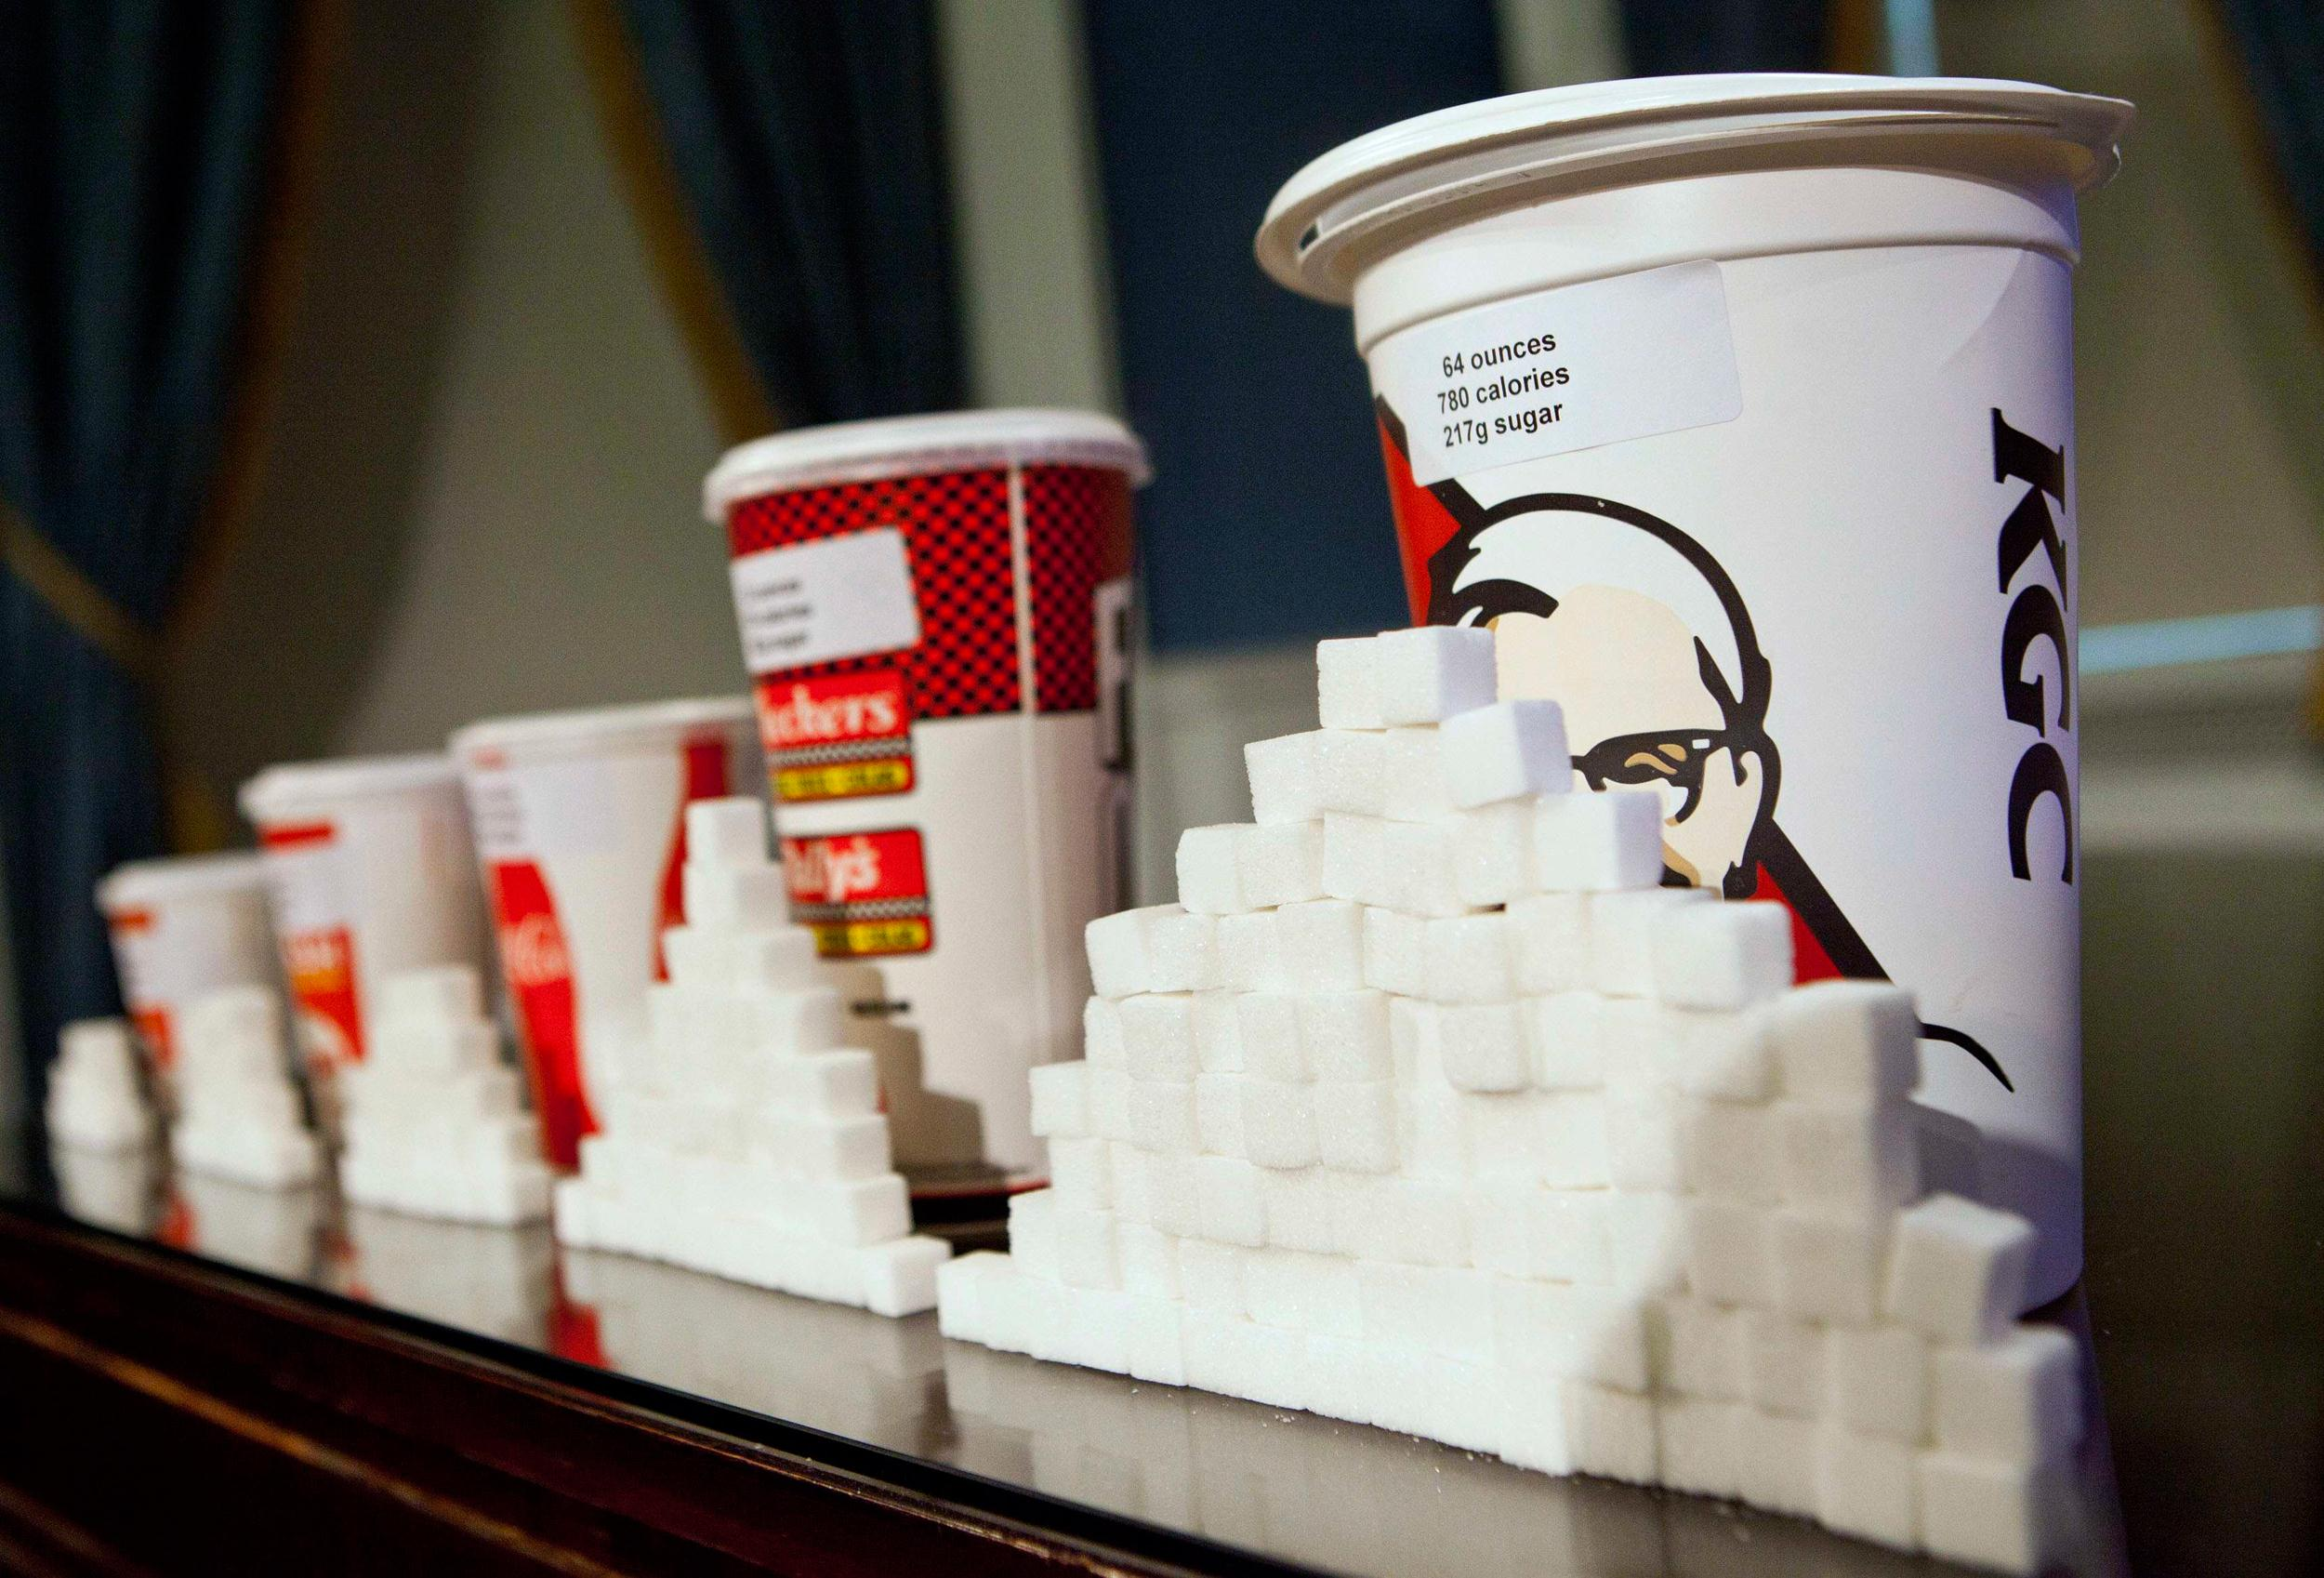 Image: A 64-ounce drink is displayed alongside sugar cubes.